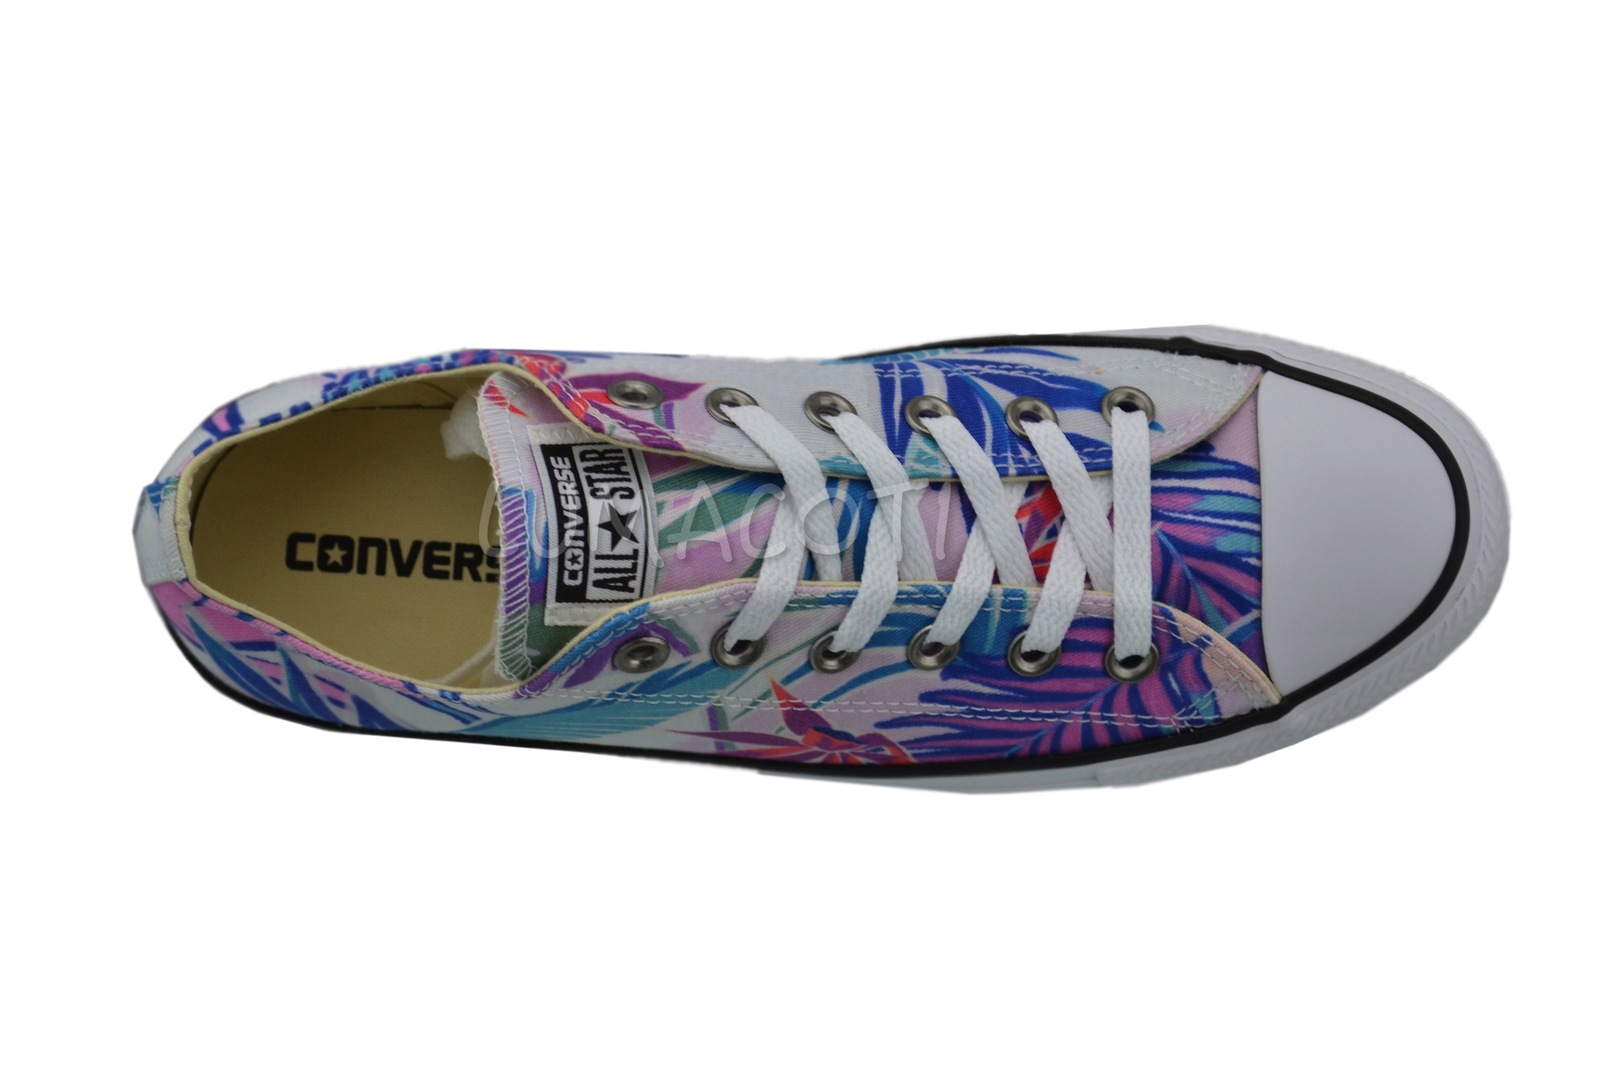 Converse Chuck Taylor All Star Tropical White Low Top Canvas Sneakers 155396F